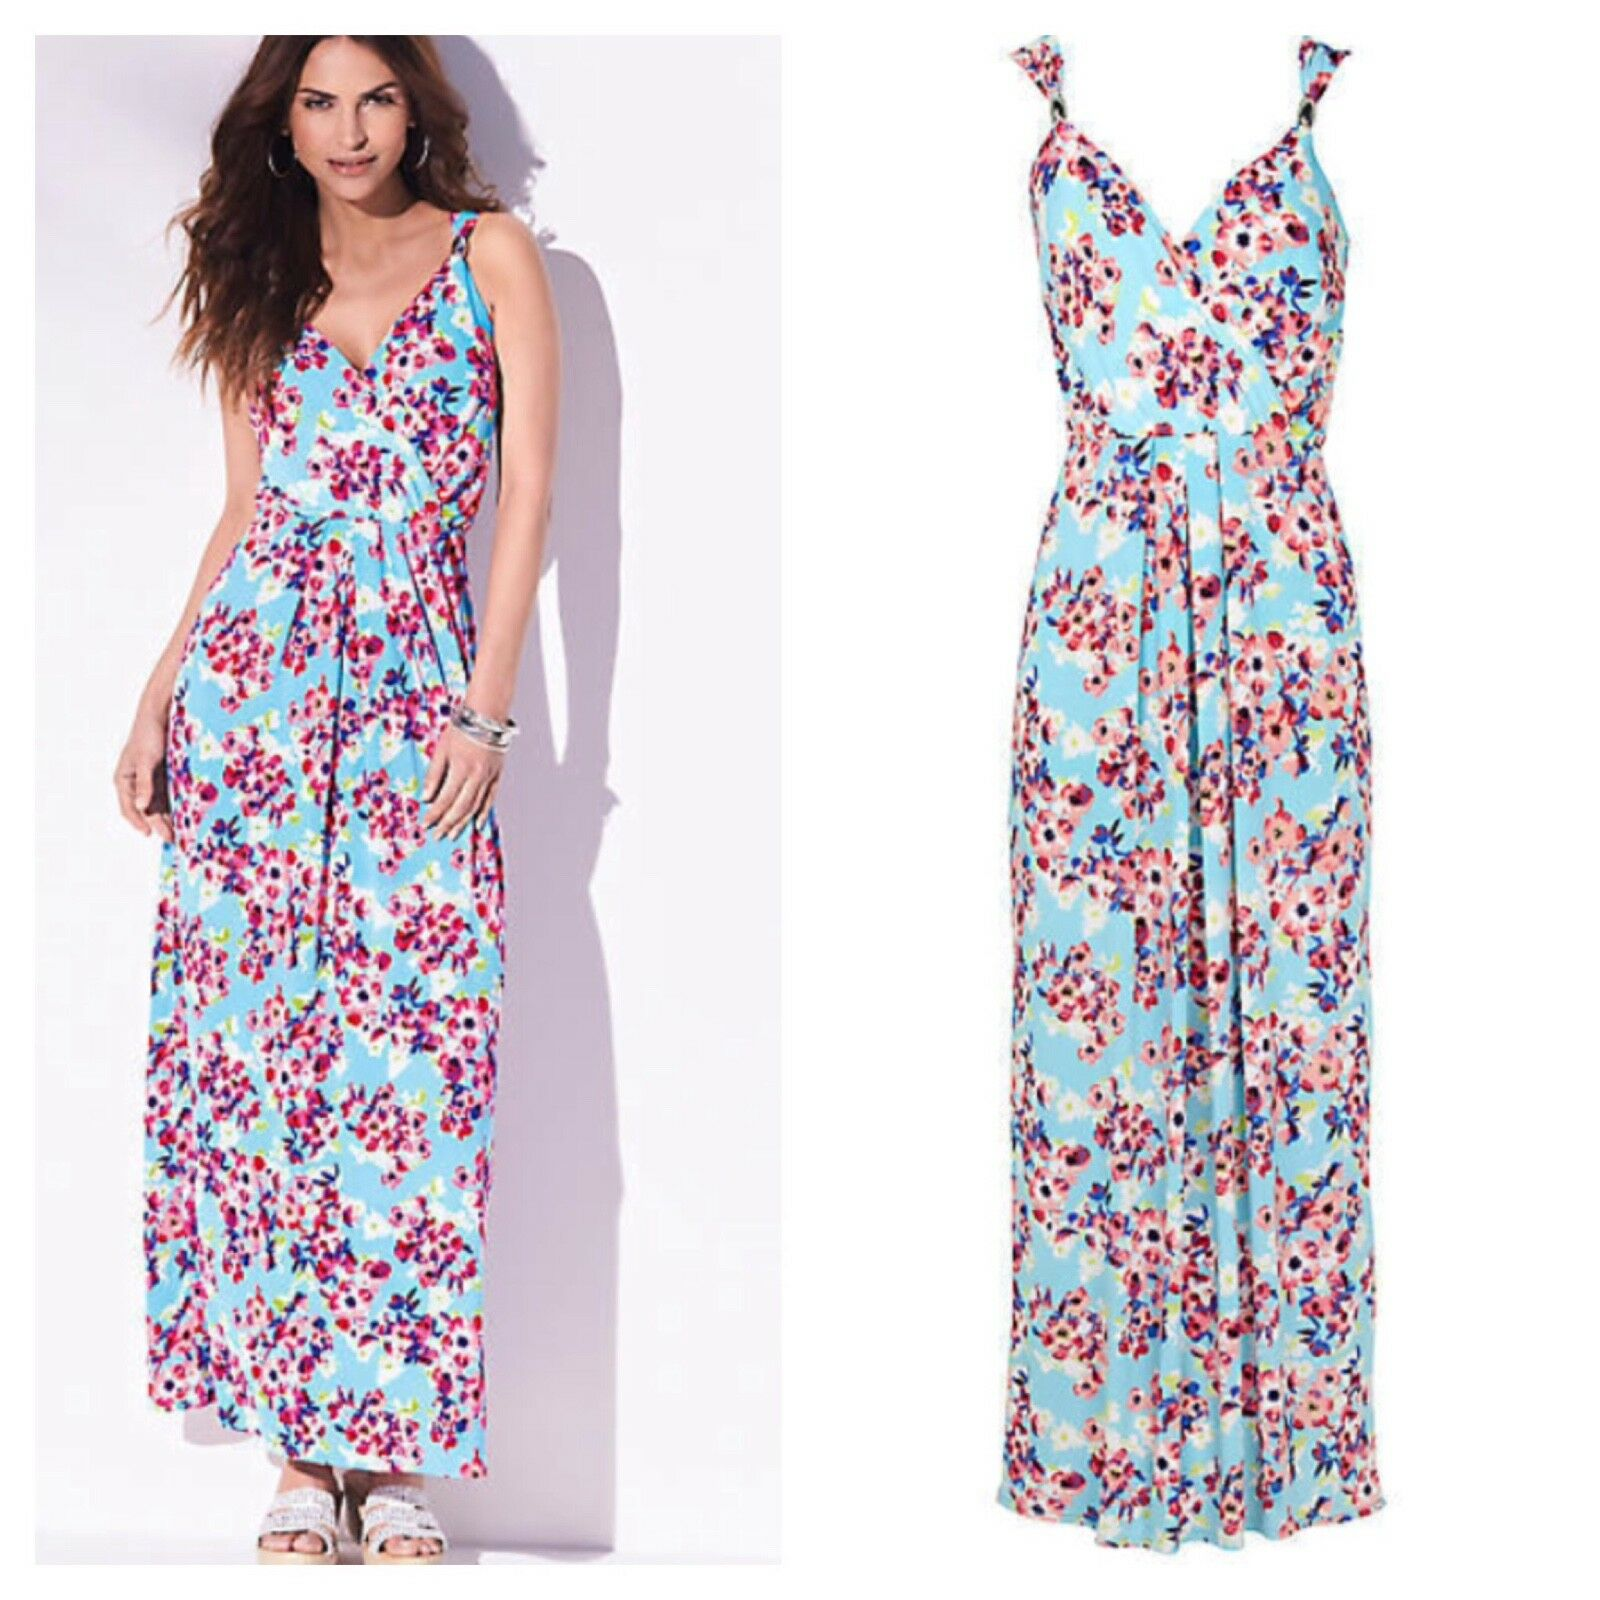 Kaleidoscope Size 10 bluee Multi Floral Print Summer Maxi DRESS Holiday Fab